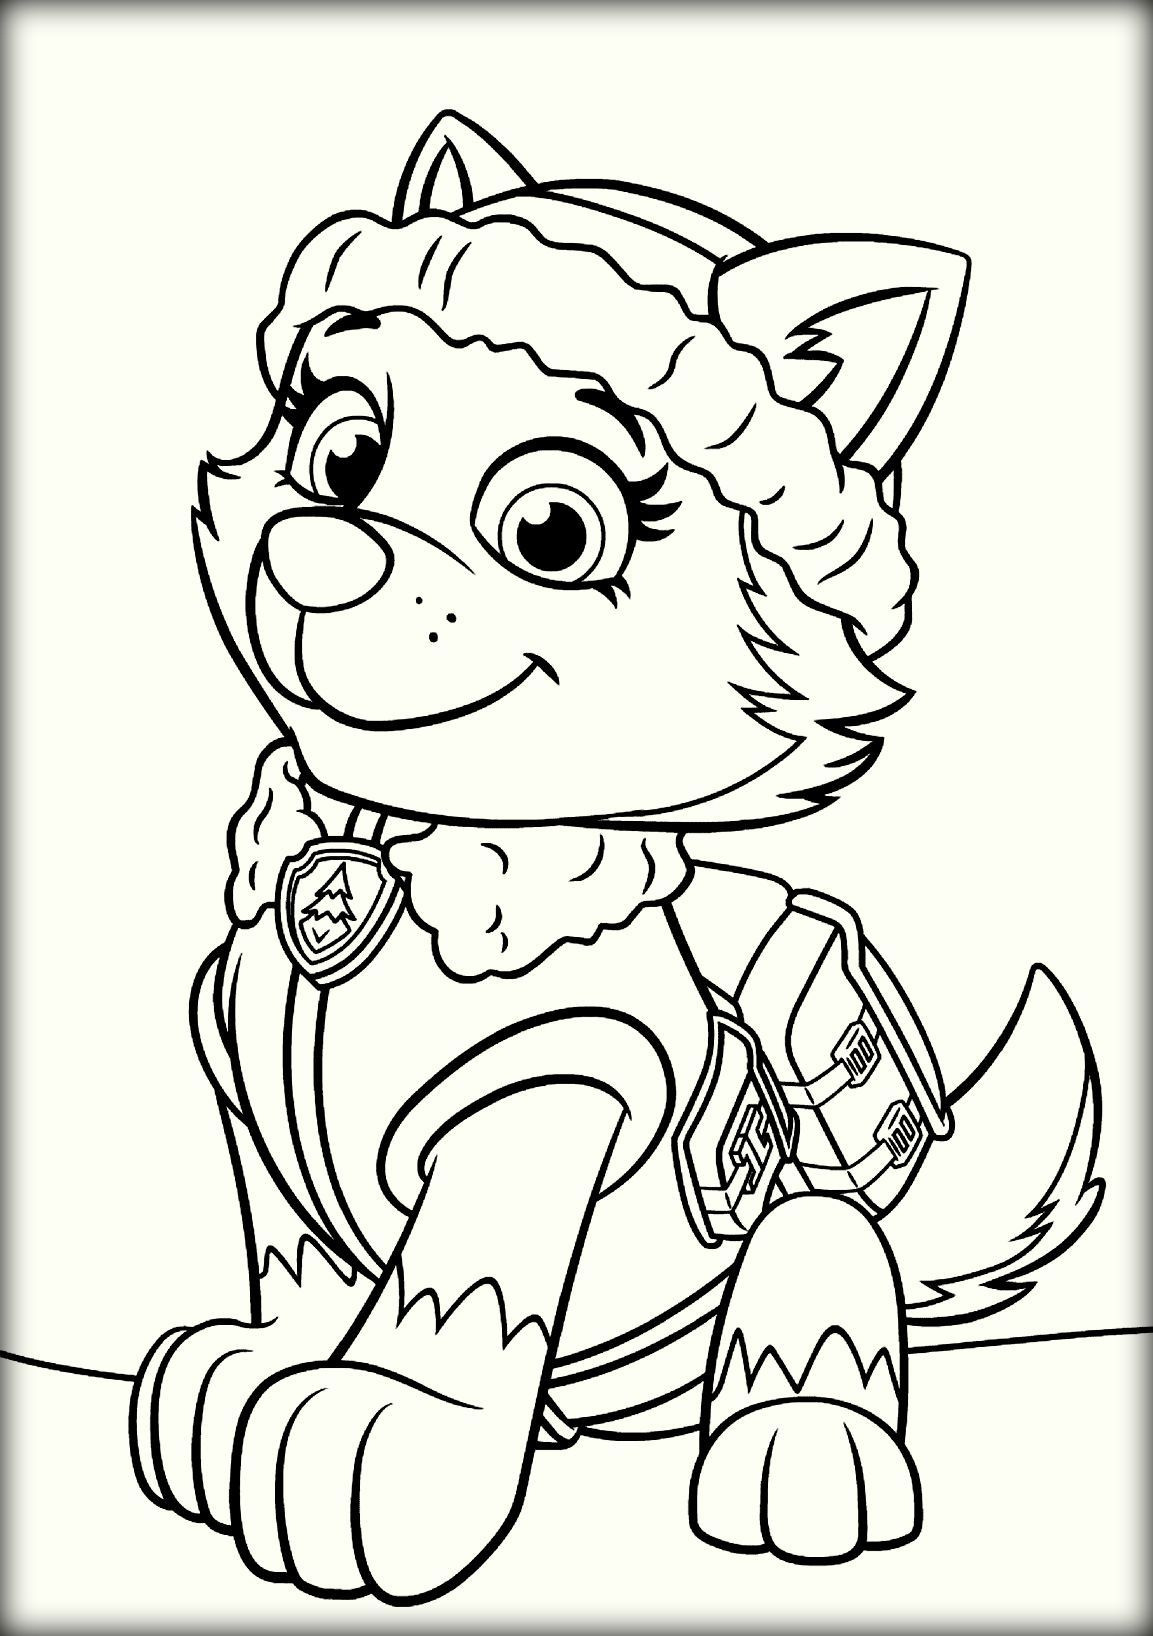 Paw Patrol Ausmalbilder Tracker Frisch Inspirational Free Paw Patrol Coloring Pages Coloring Pages Stock